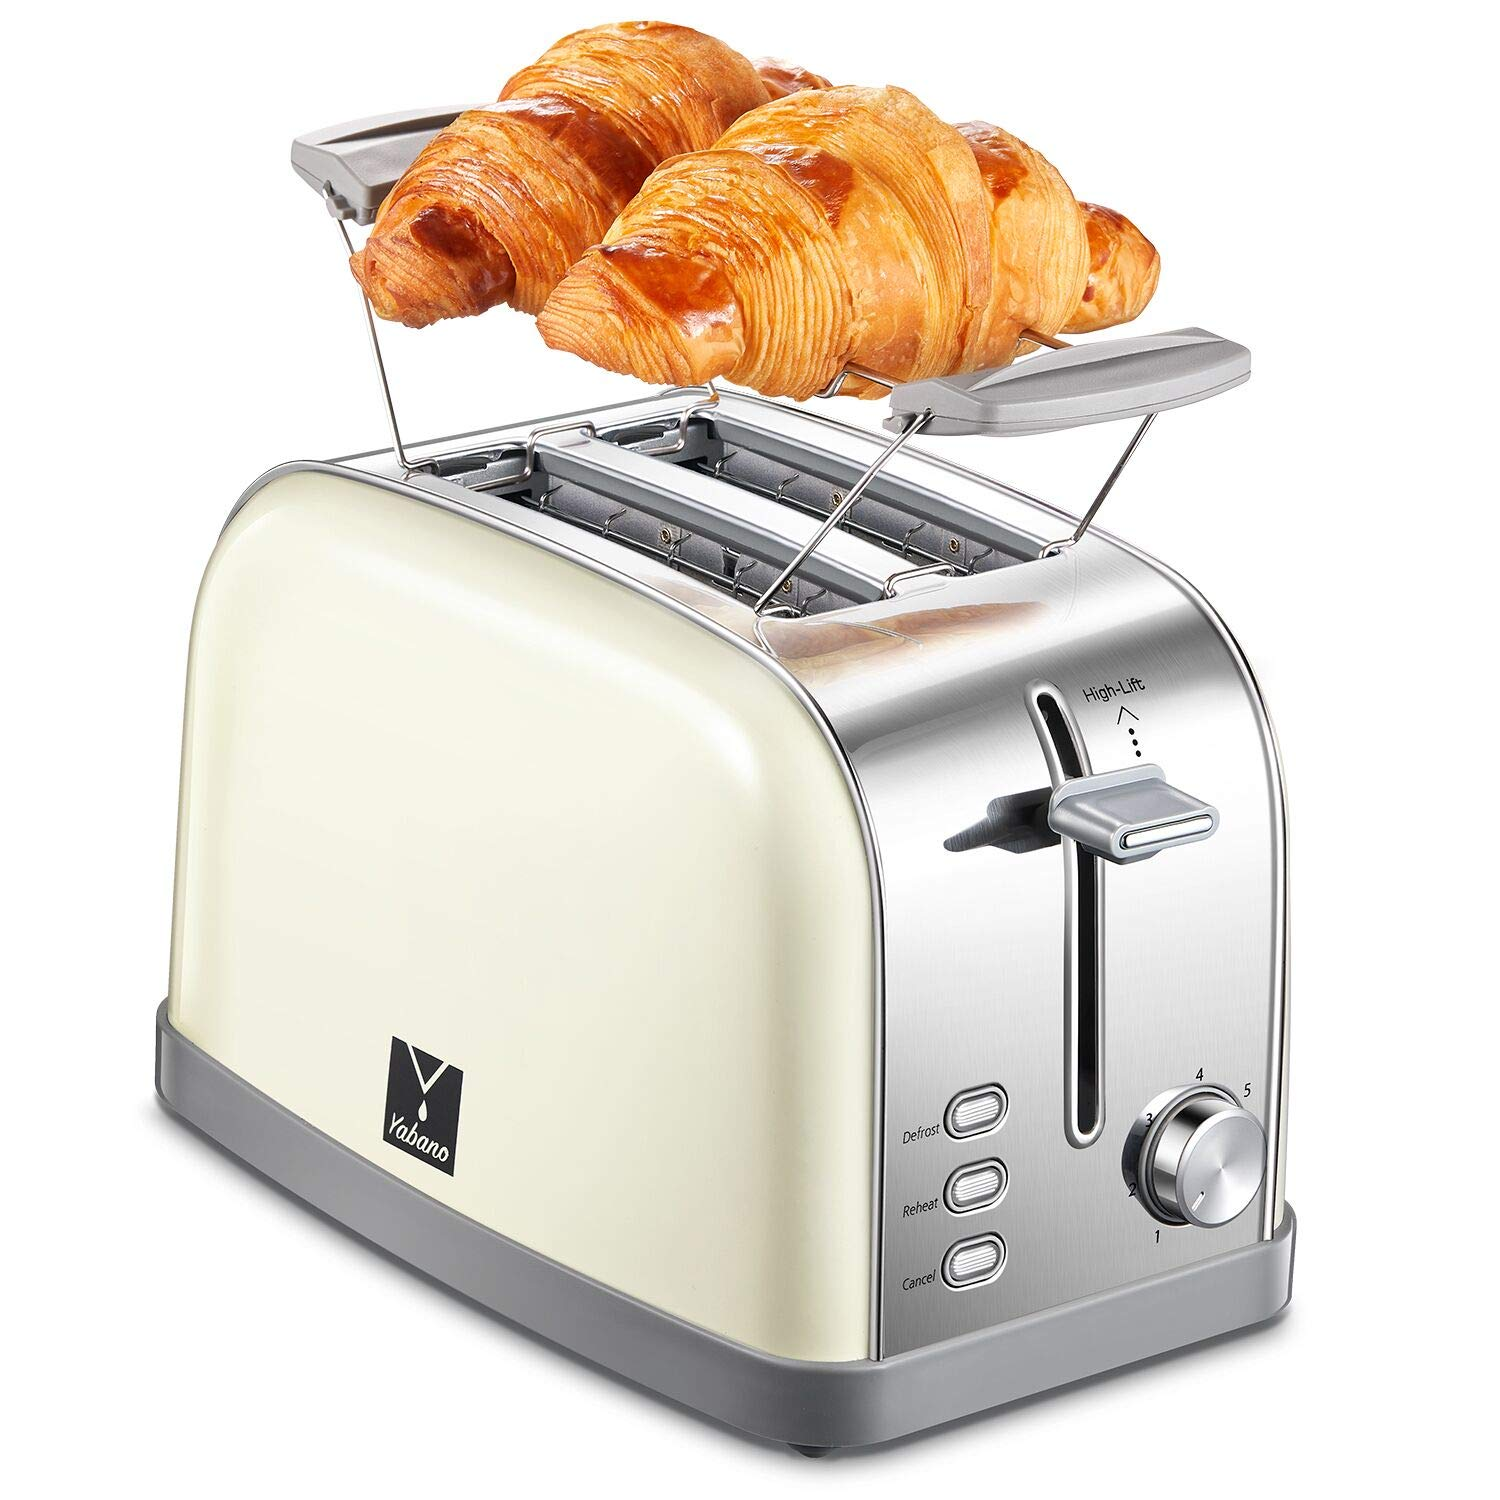 Yabano 2 Slice Toaster, Retro Bagel Toaster Toaster with 7 Bread Shade Settings, 2 Extra Wide Slots, Defrost/Bagel/Cancel Function, Removable Crumb Tray, Stainless Steel Toaster, Cream white by Yabano